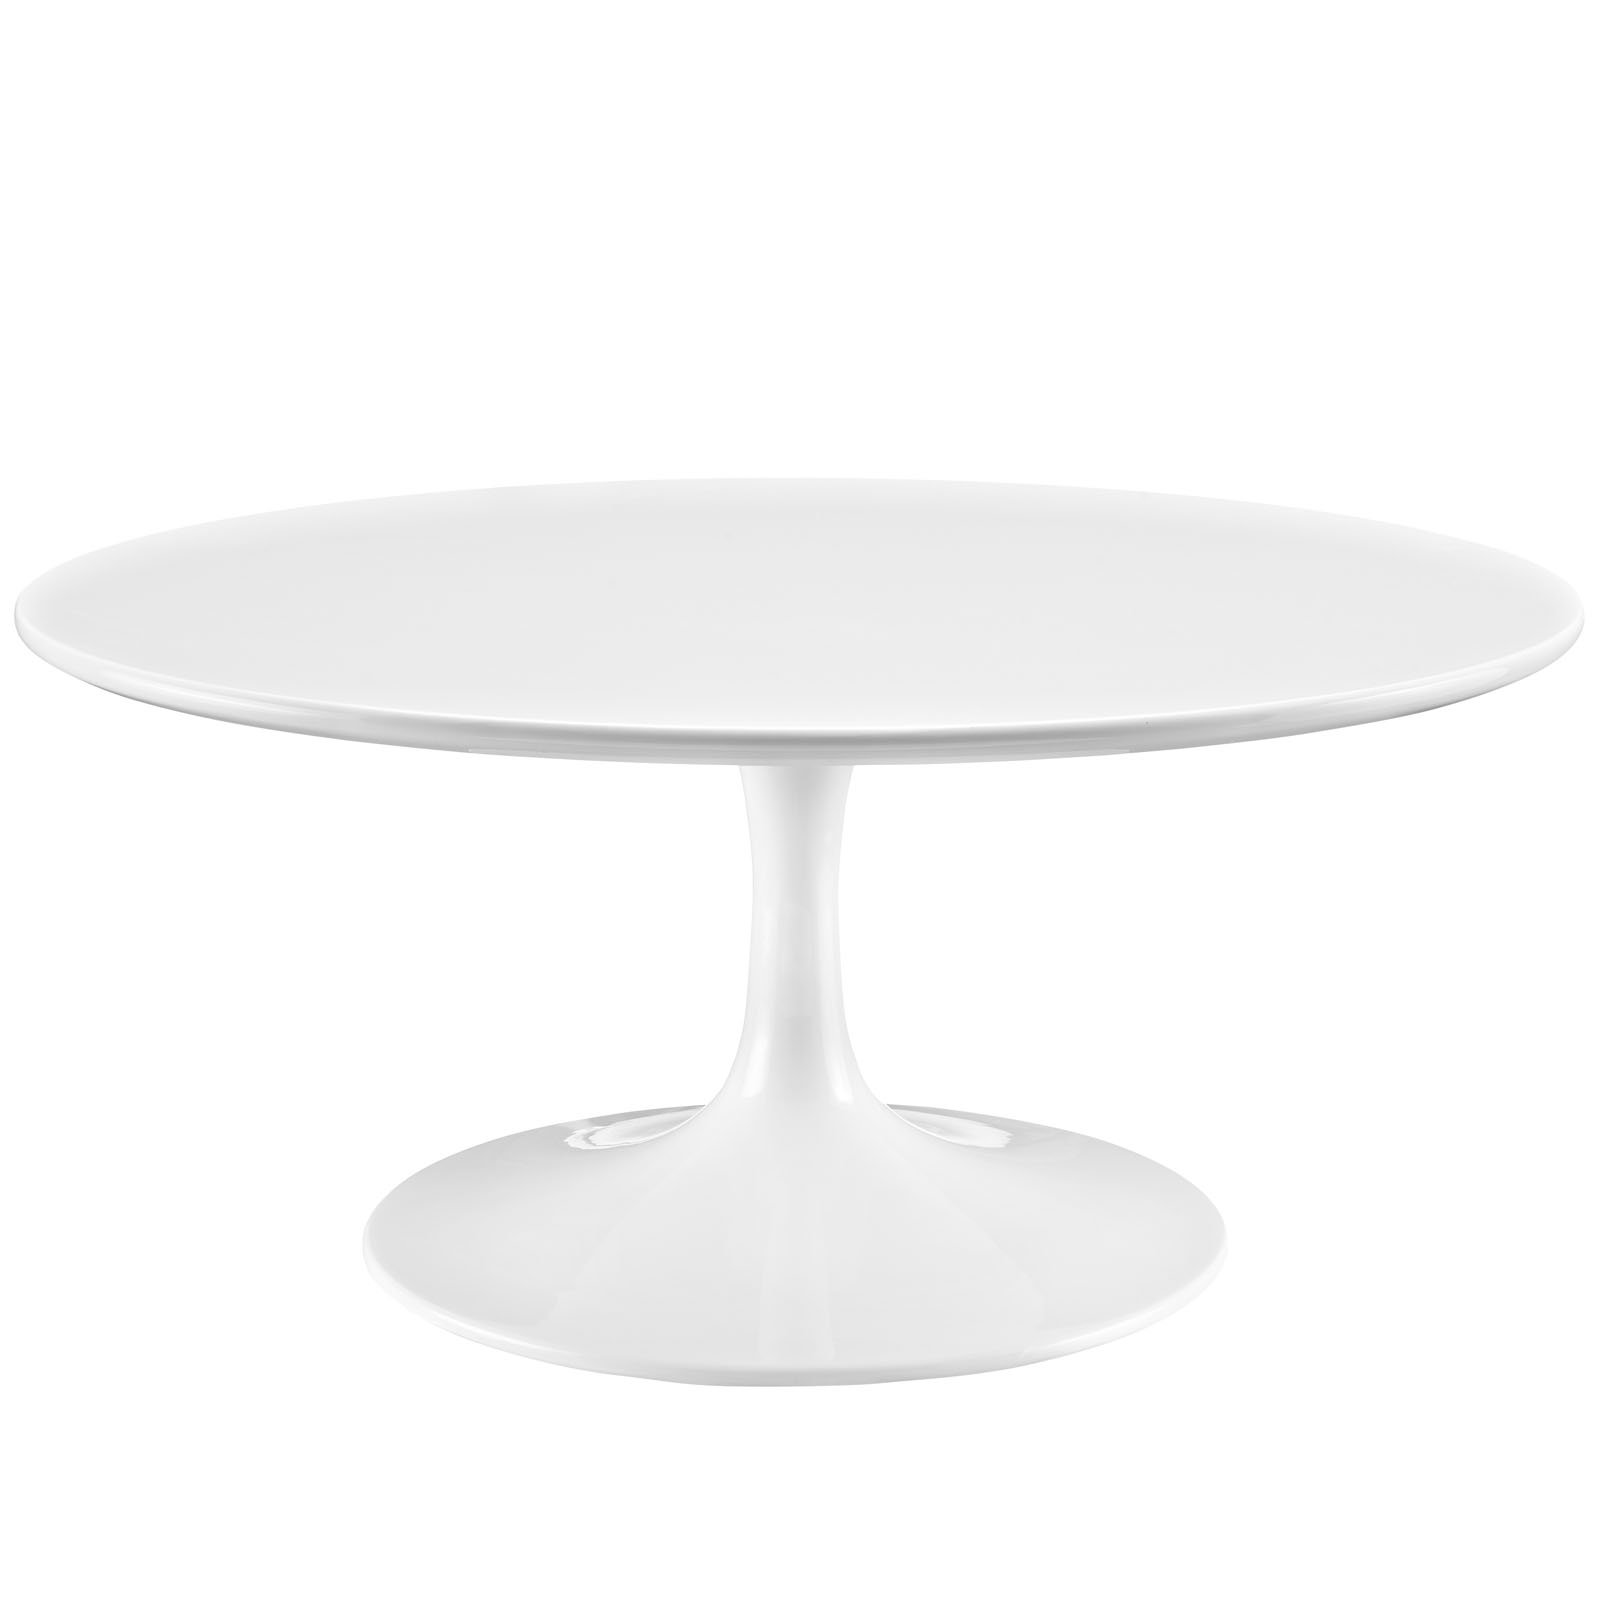 Modway Lippa Mid-Century Modern 36'' Round Fiberglass Coffee Table in White by Modway